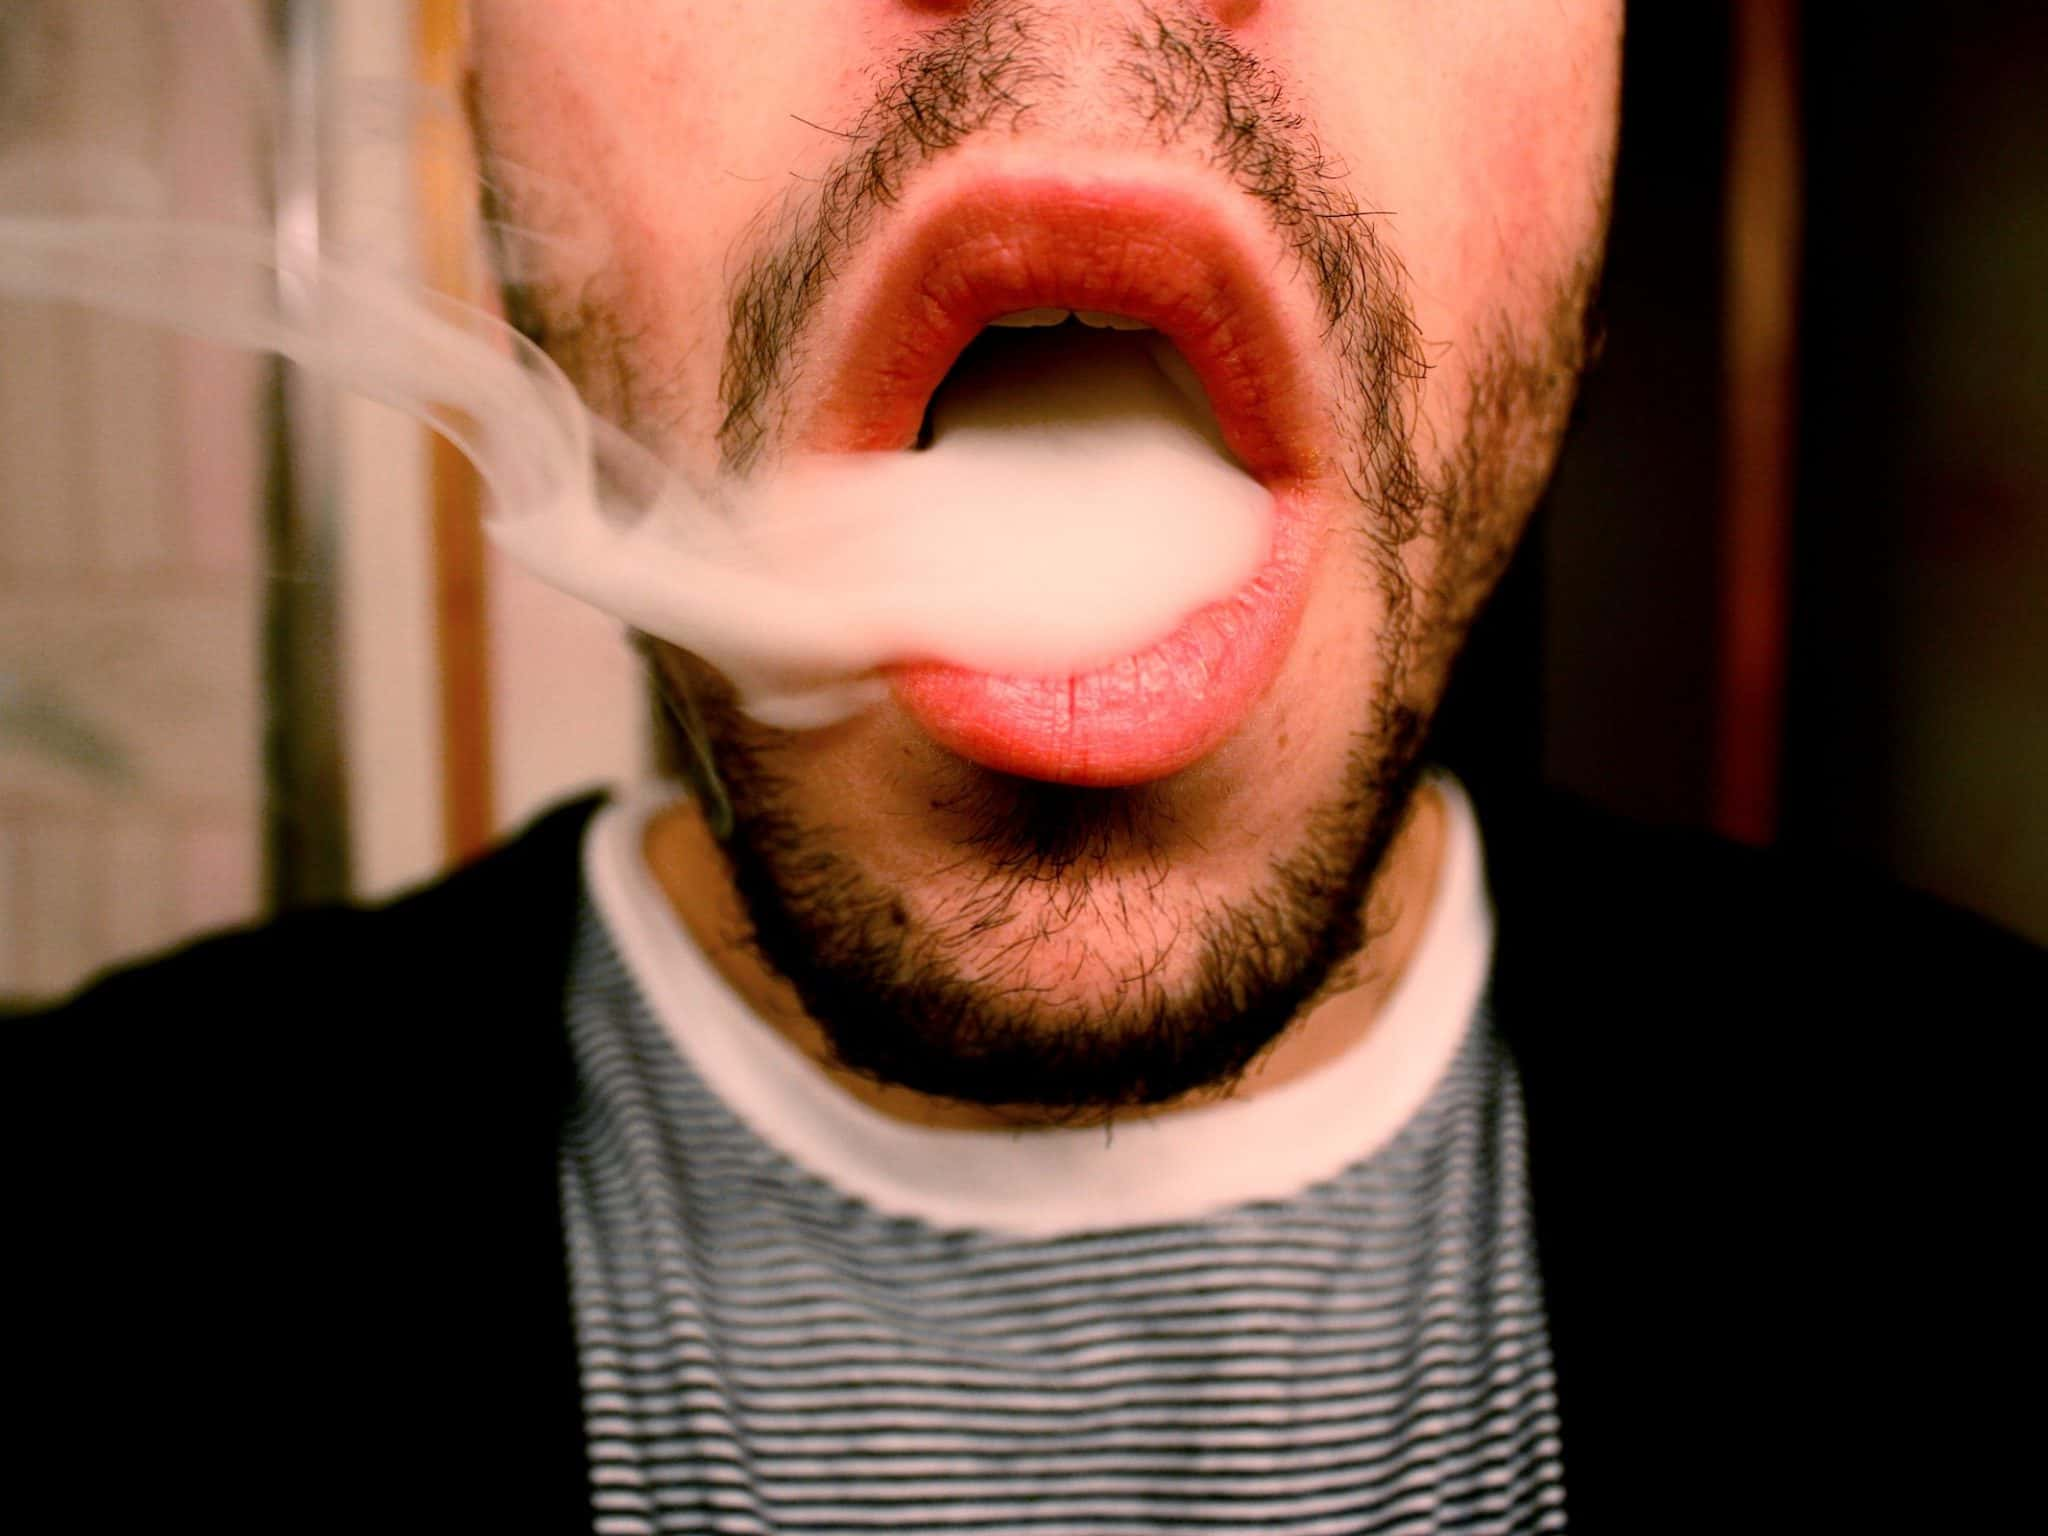 PTSD Research with Cannabis Shows Ability to Trigger Dehabituation